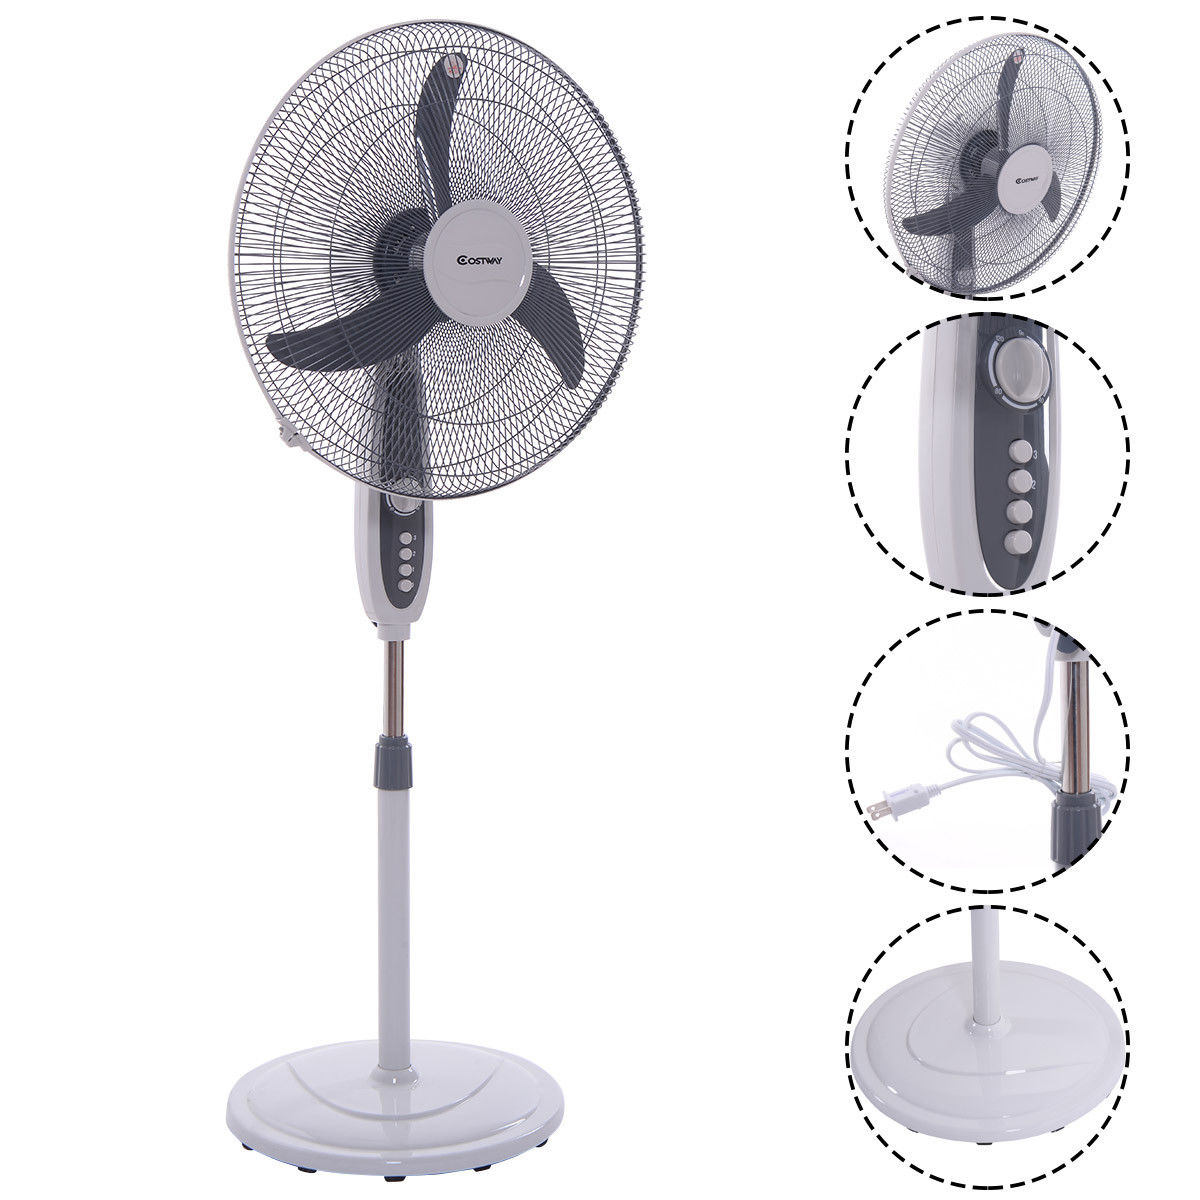 Costway 18 Pedestal Fan 3-Speed Oscillating Stand Floor Manual Control Timer Swing Head